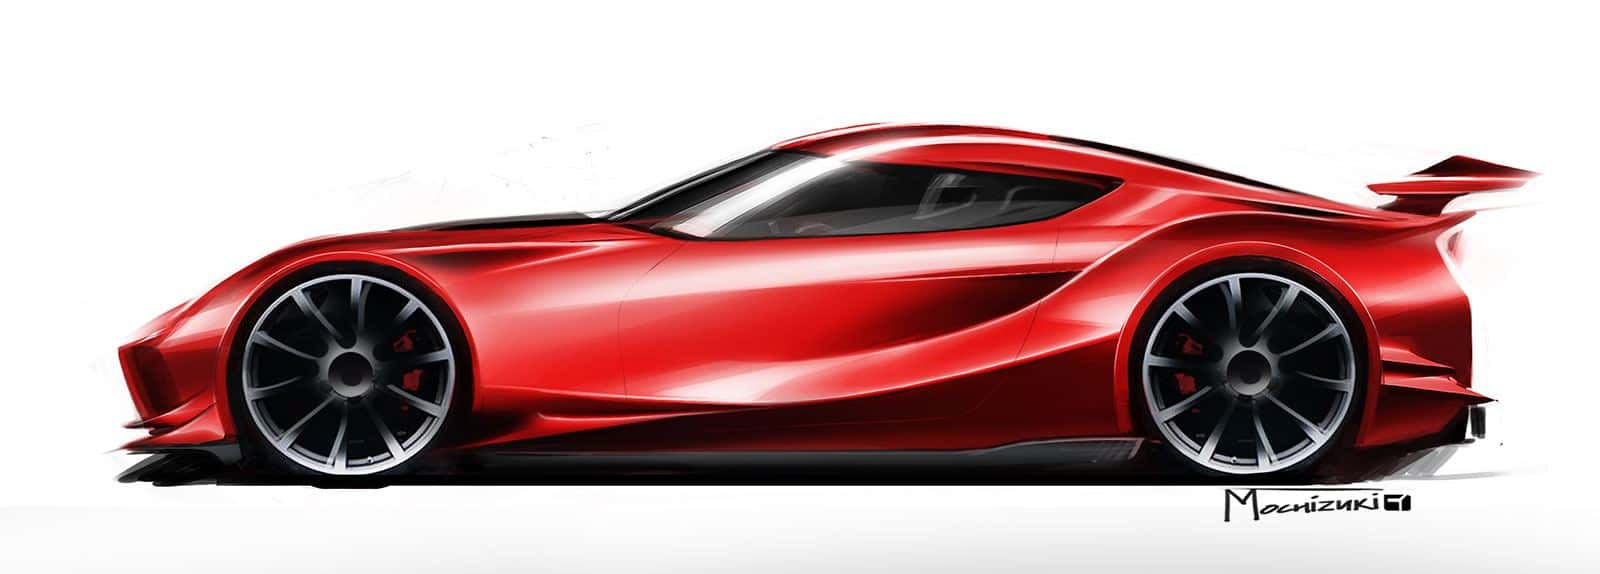 Toyota Ft 1 >> Meet The Designers Behind The Toyota Ft 1 Concept Creation